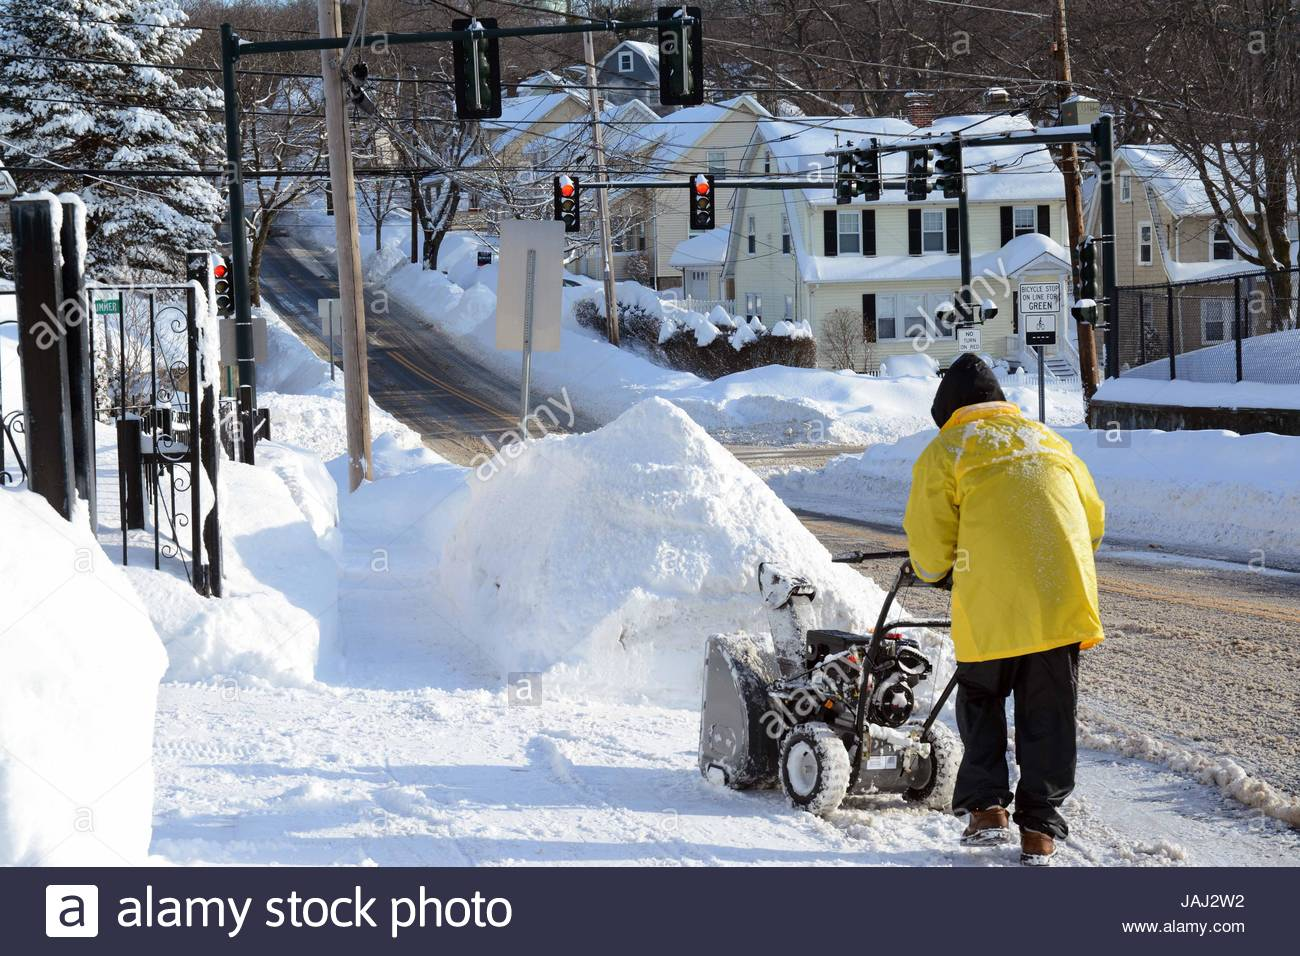 A person with a snow blower cleaning up after a record storm in the Boston area. - Stock Image